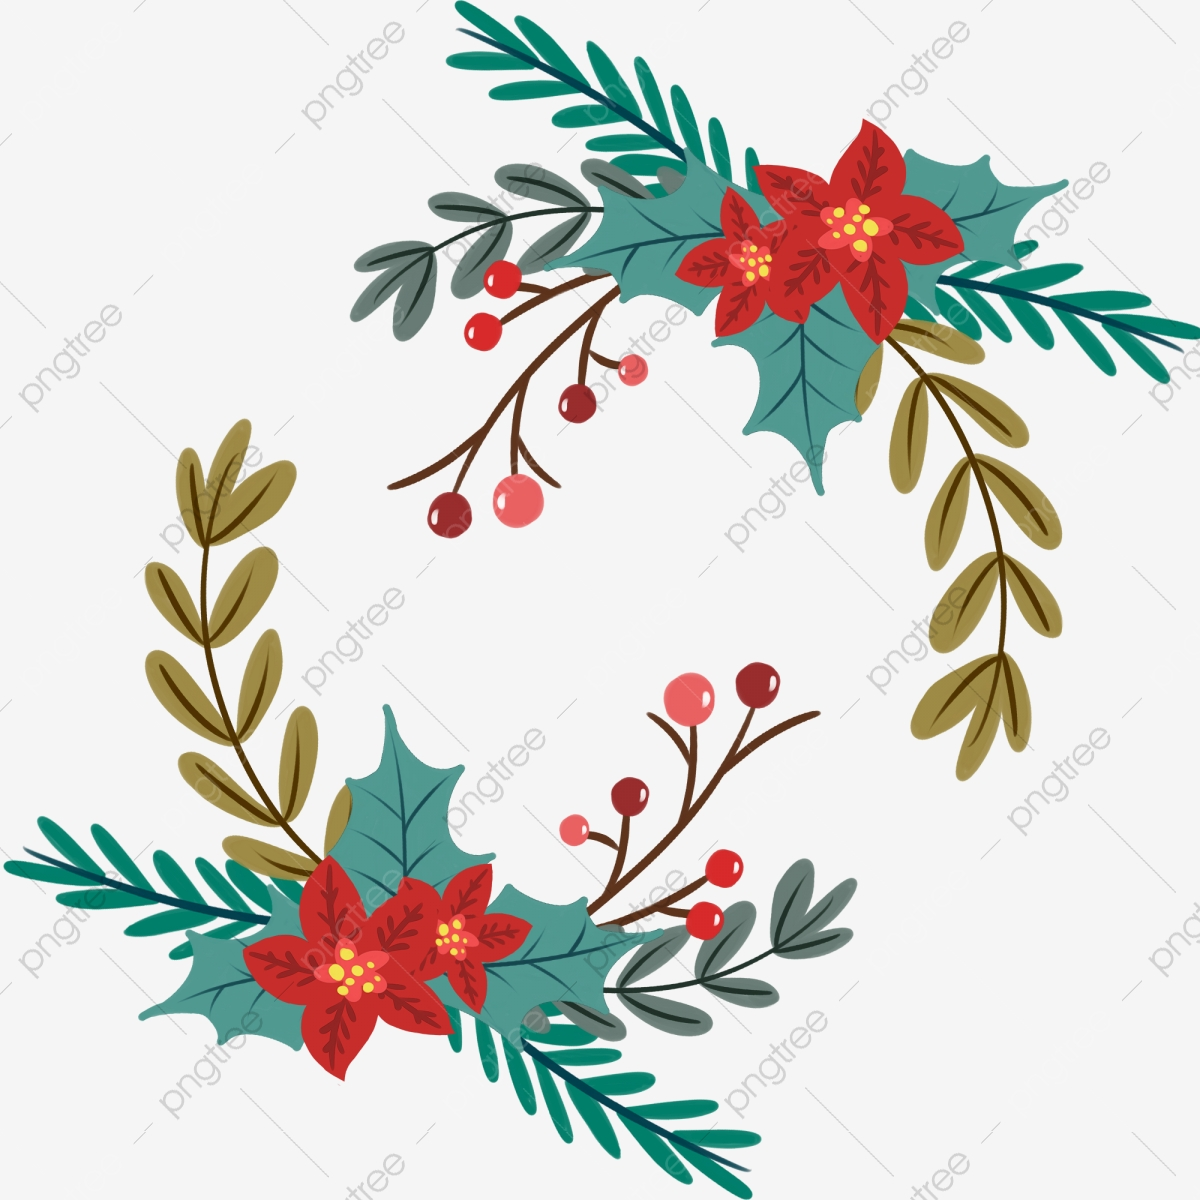 Christmas Flower Png Images Vector And Psd Files Free Download On Pngtree